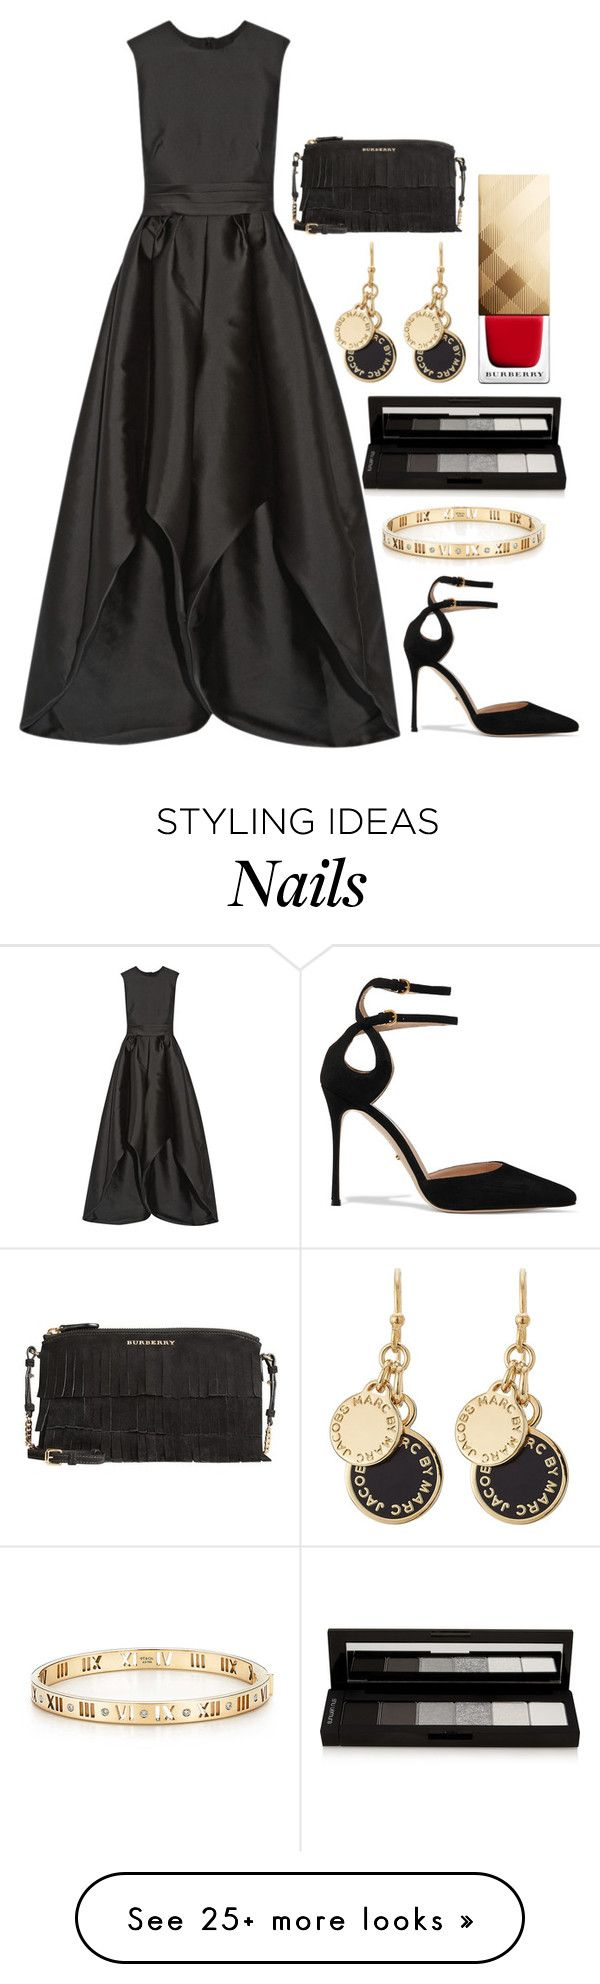 """Jumpsuit"" by styledbypr on Polyvore featuring Merchant Archive, Sergio Rossi, shu uemura, Tiffany & Co., Marc by Marc Jacobs and Burberry"